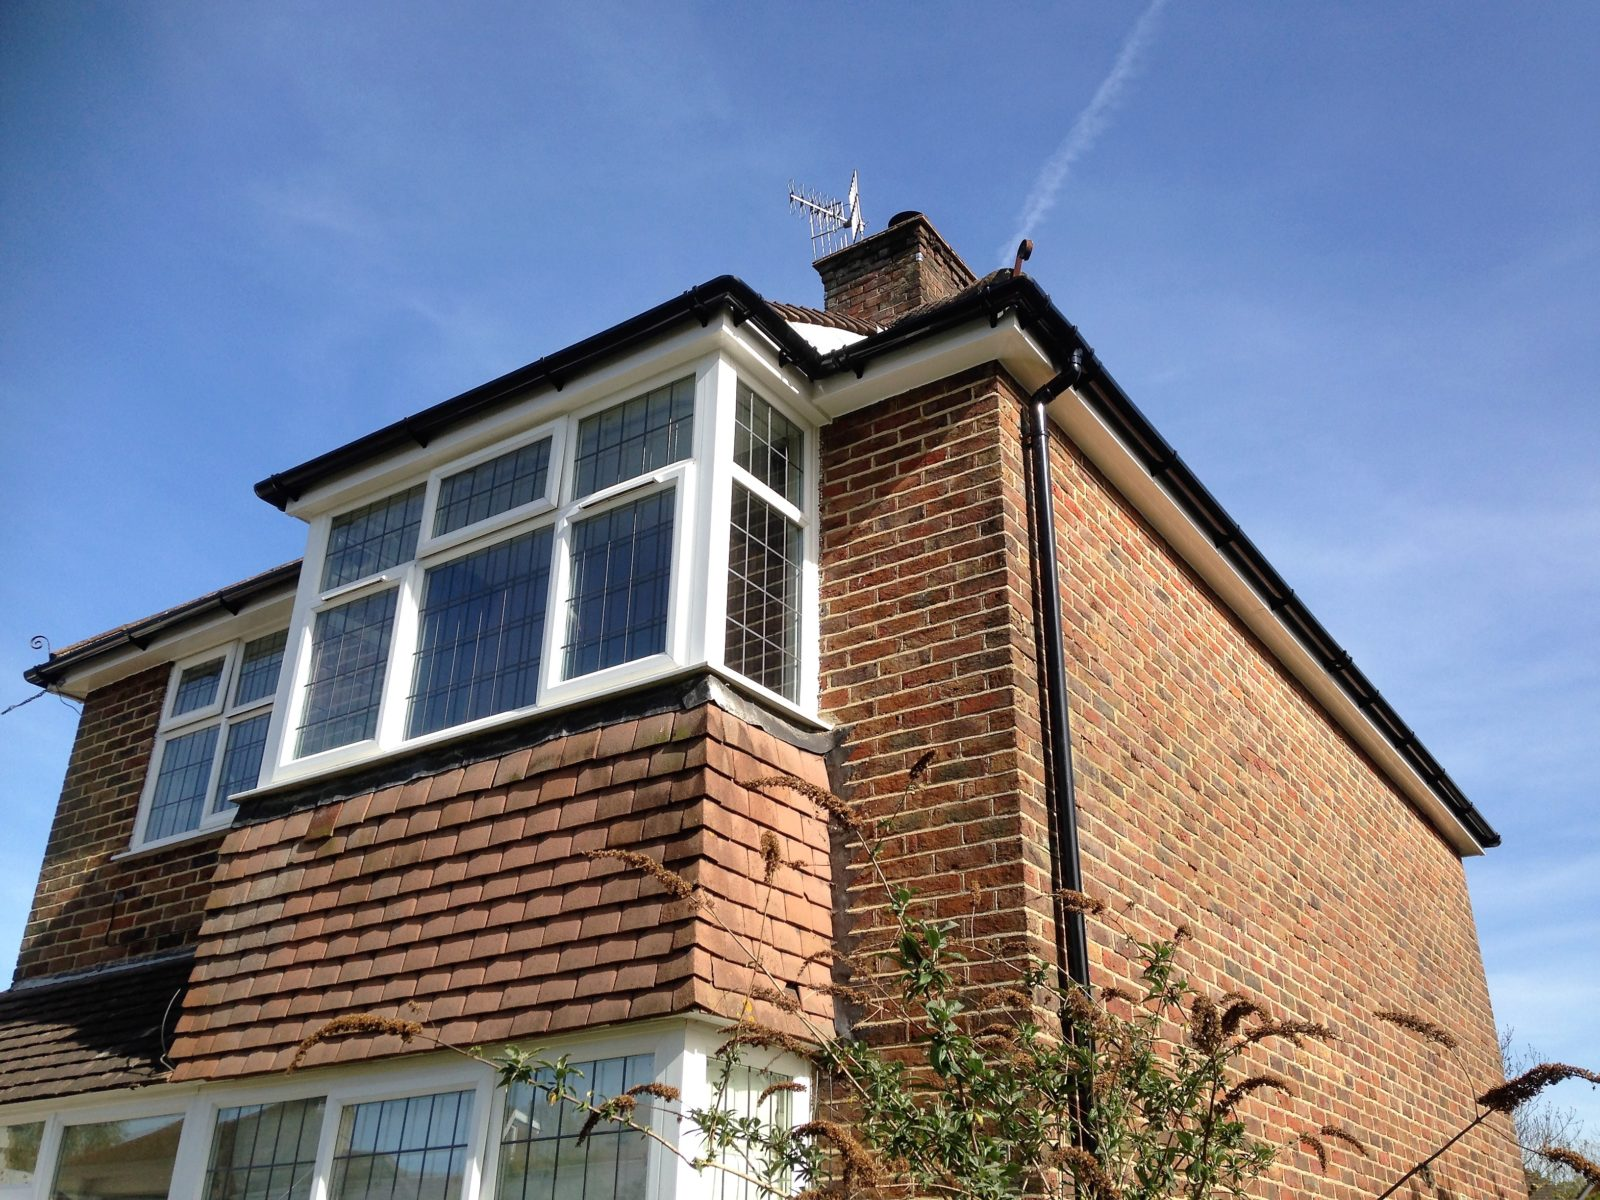 Roofline project in Reigate